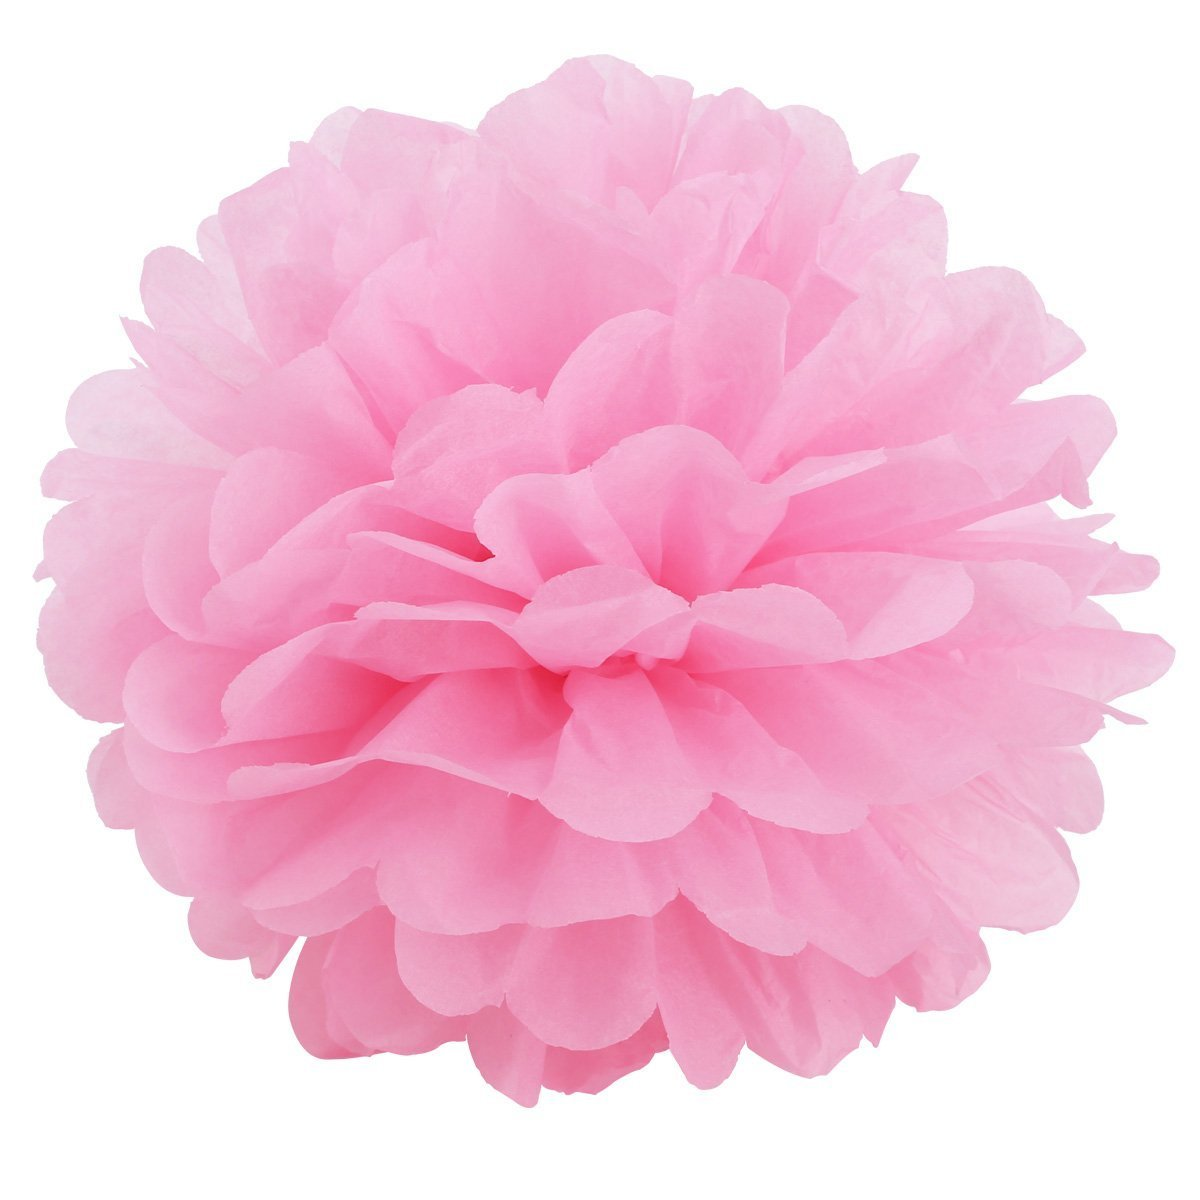 Sungpunet 10Pcs Pink Tissue Paper Flowers Pom Poms For Wedding Party Decoration Lanterns Table and Wall Decor PHT